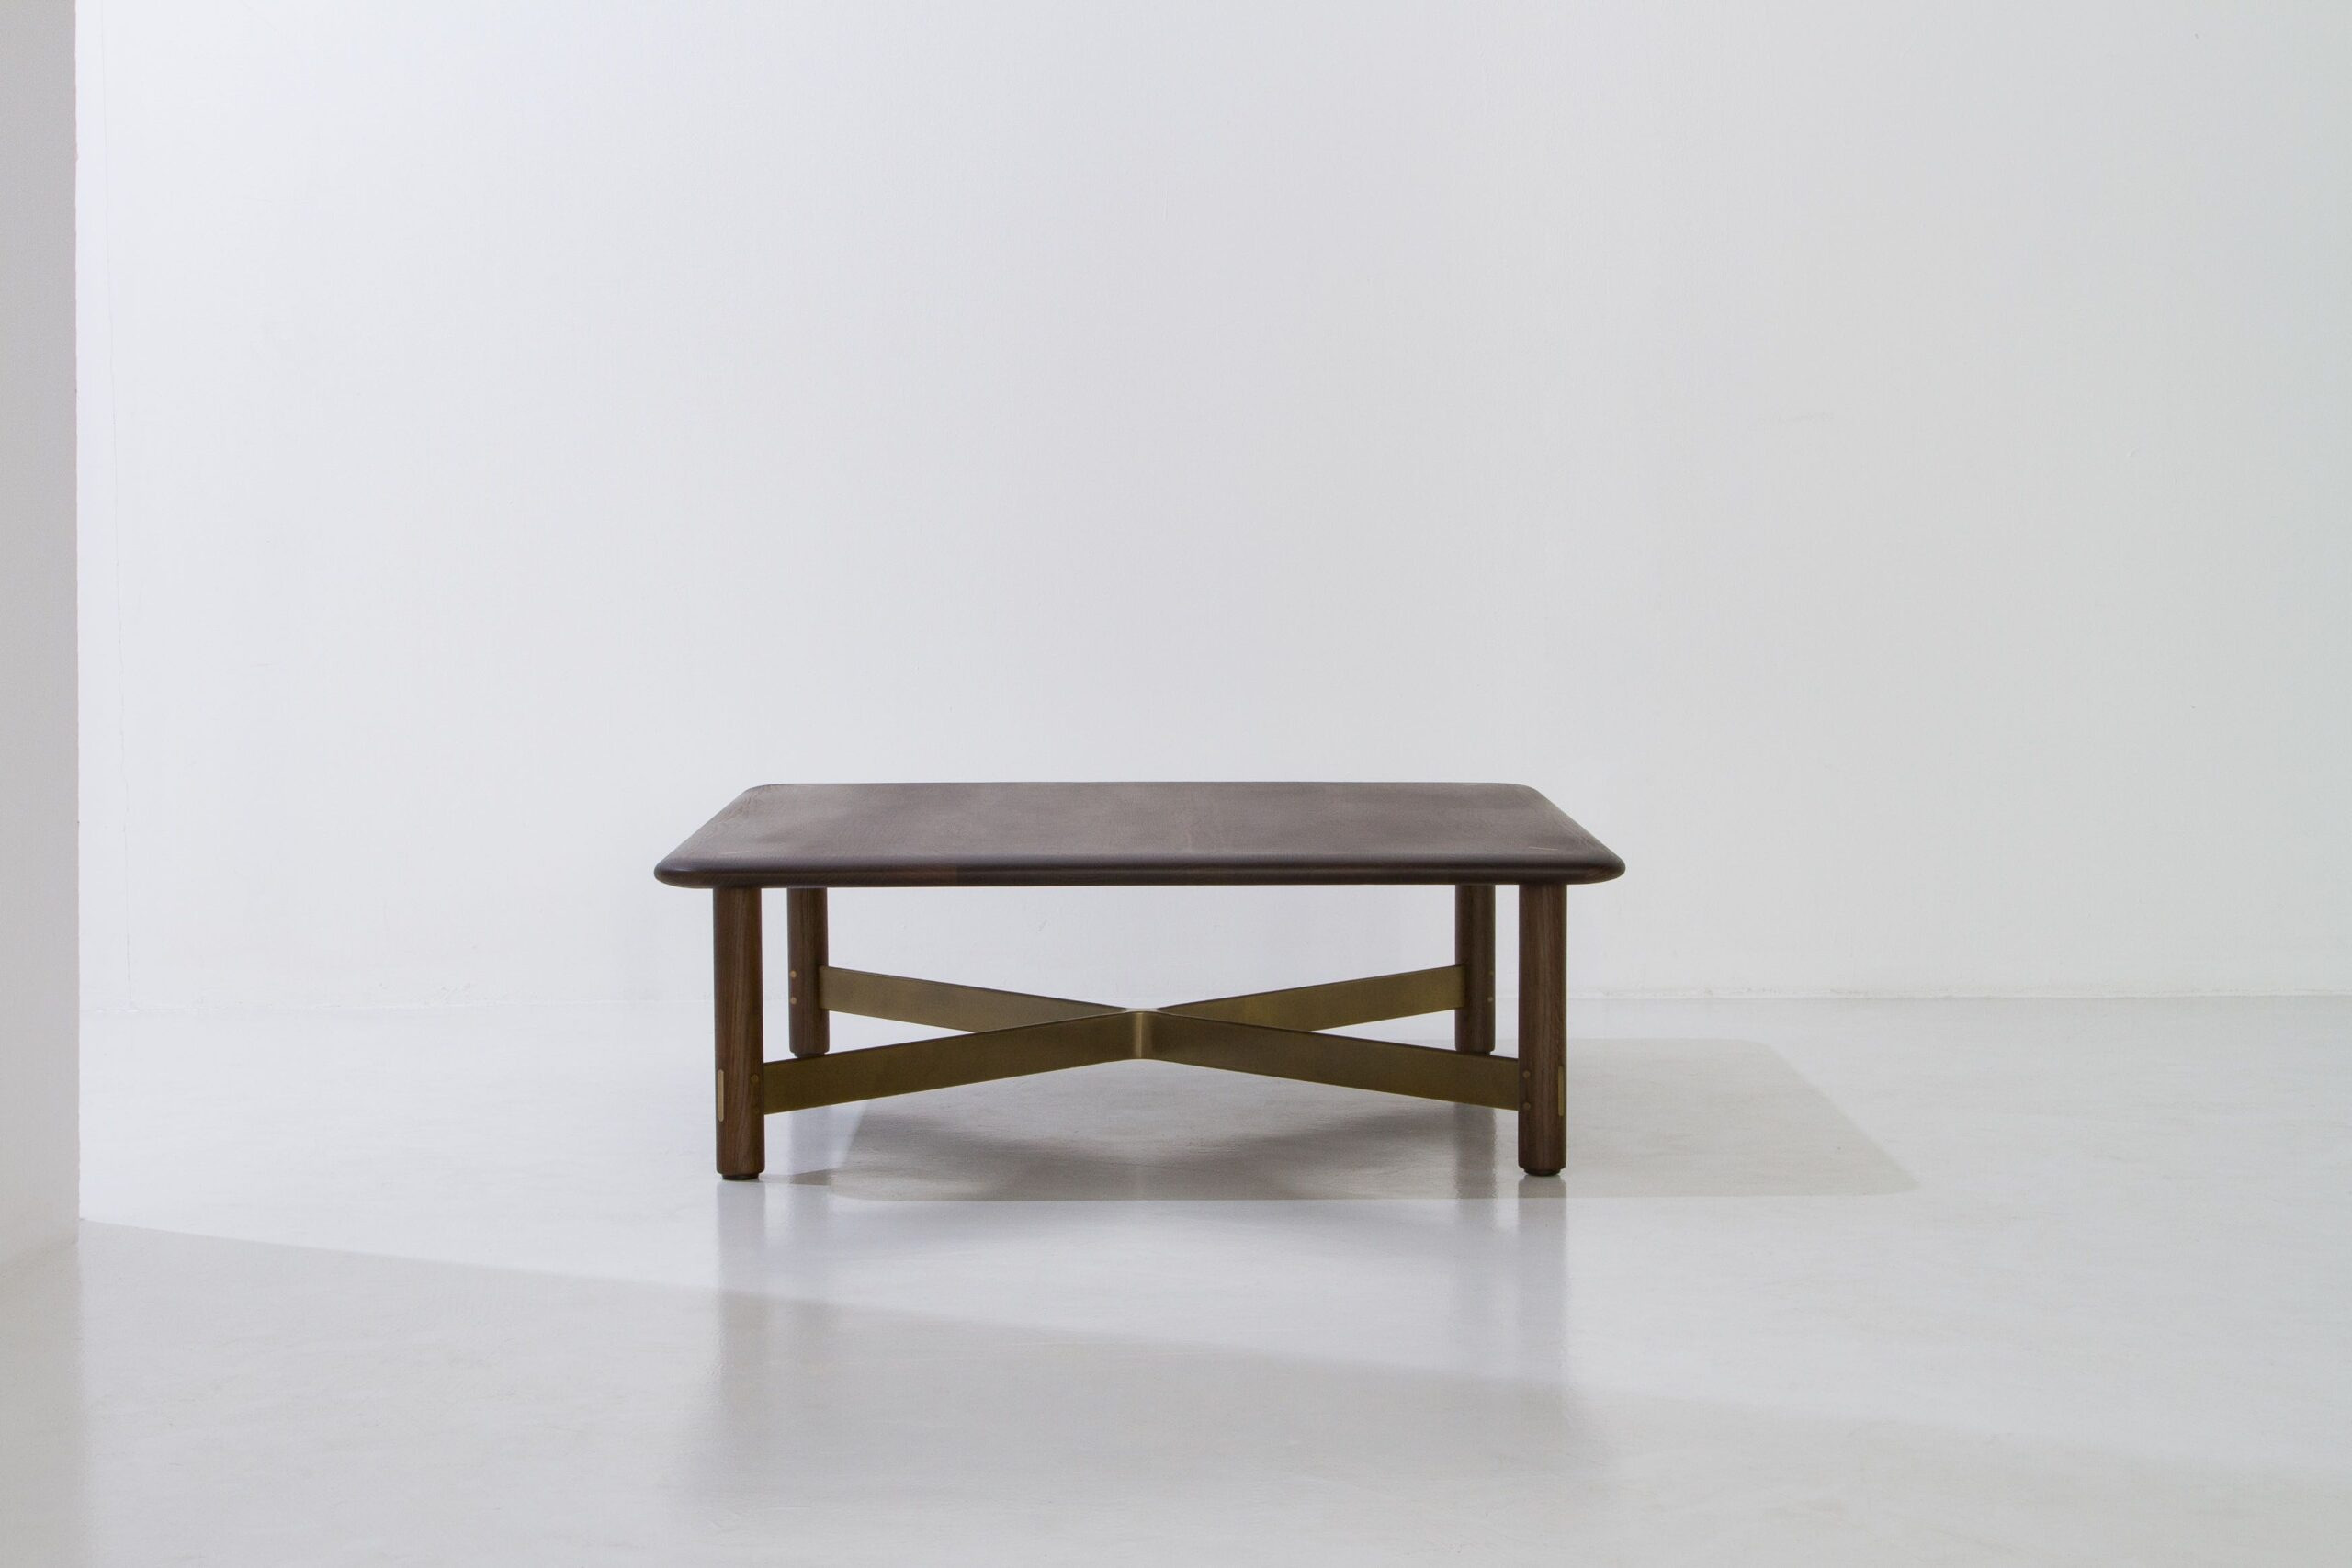 Dunke Design Stilt Square Table – Smoked Oak